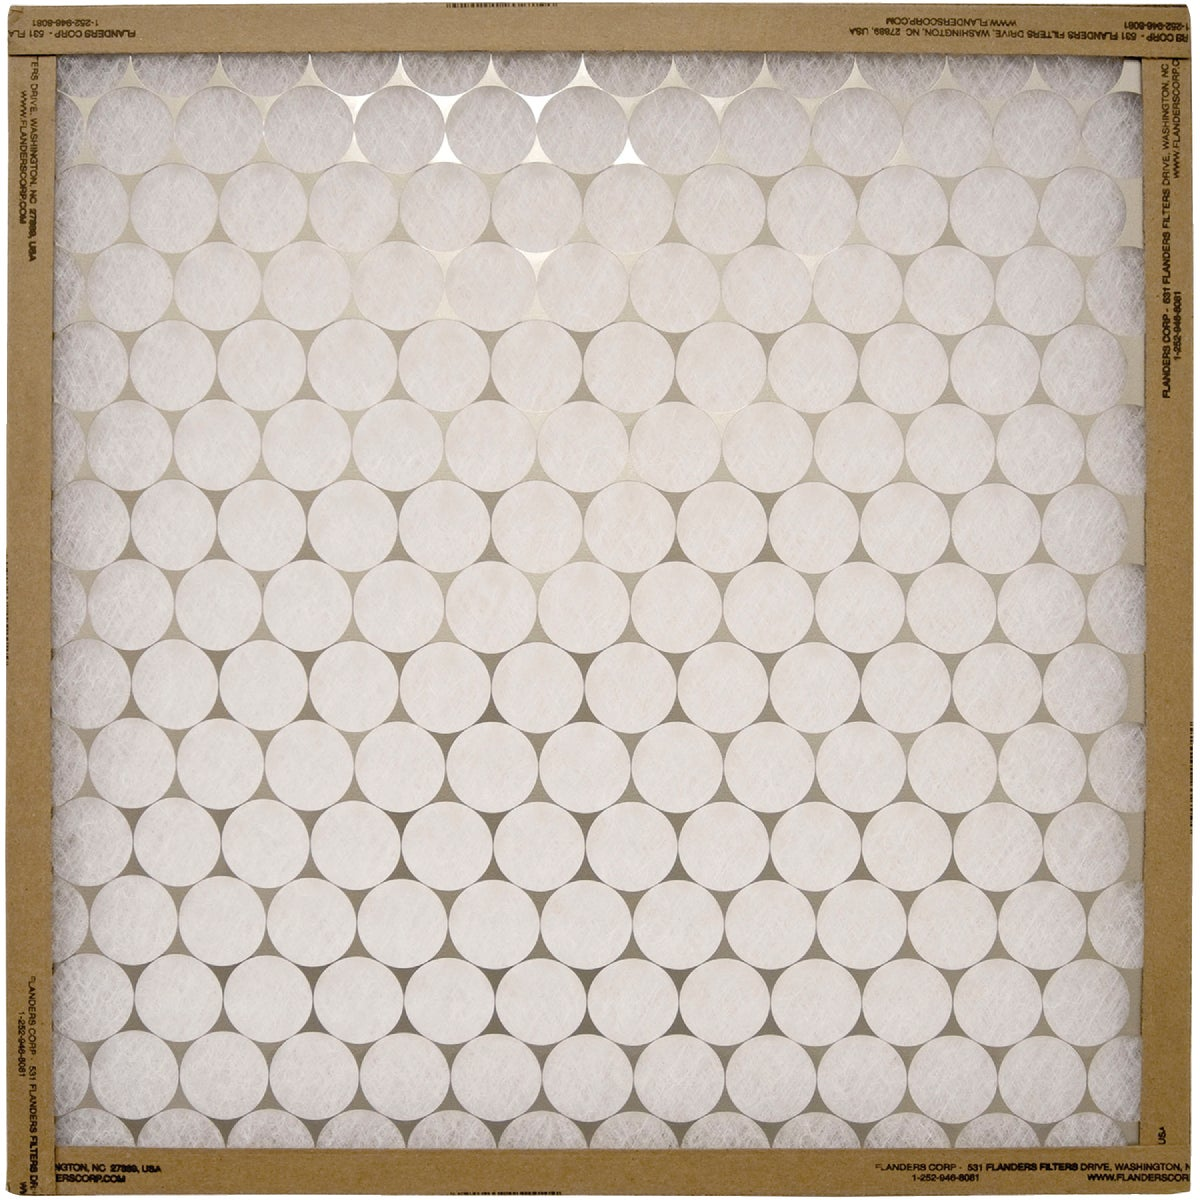 20X24 FURNACE FILTER - 10255.012024 by Flanders Corp